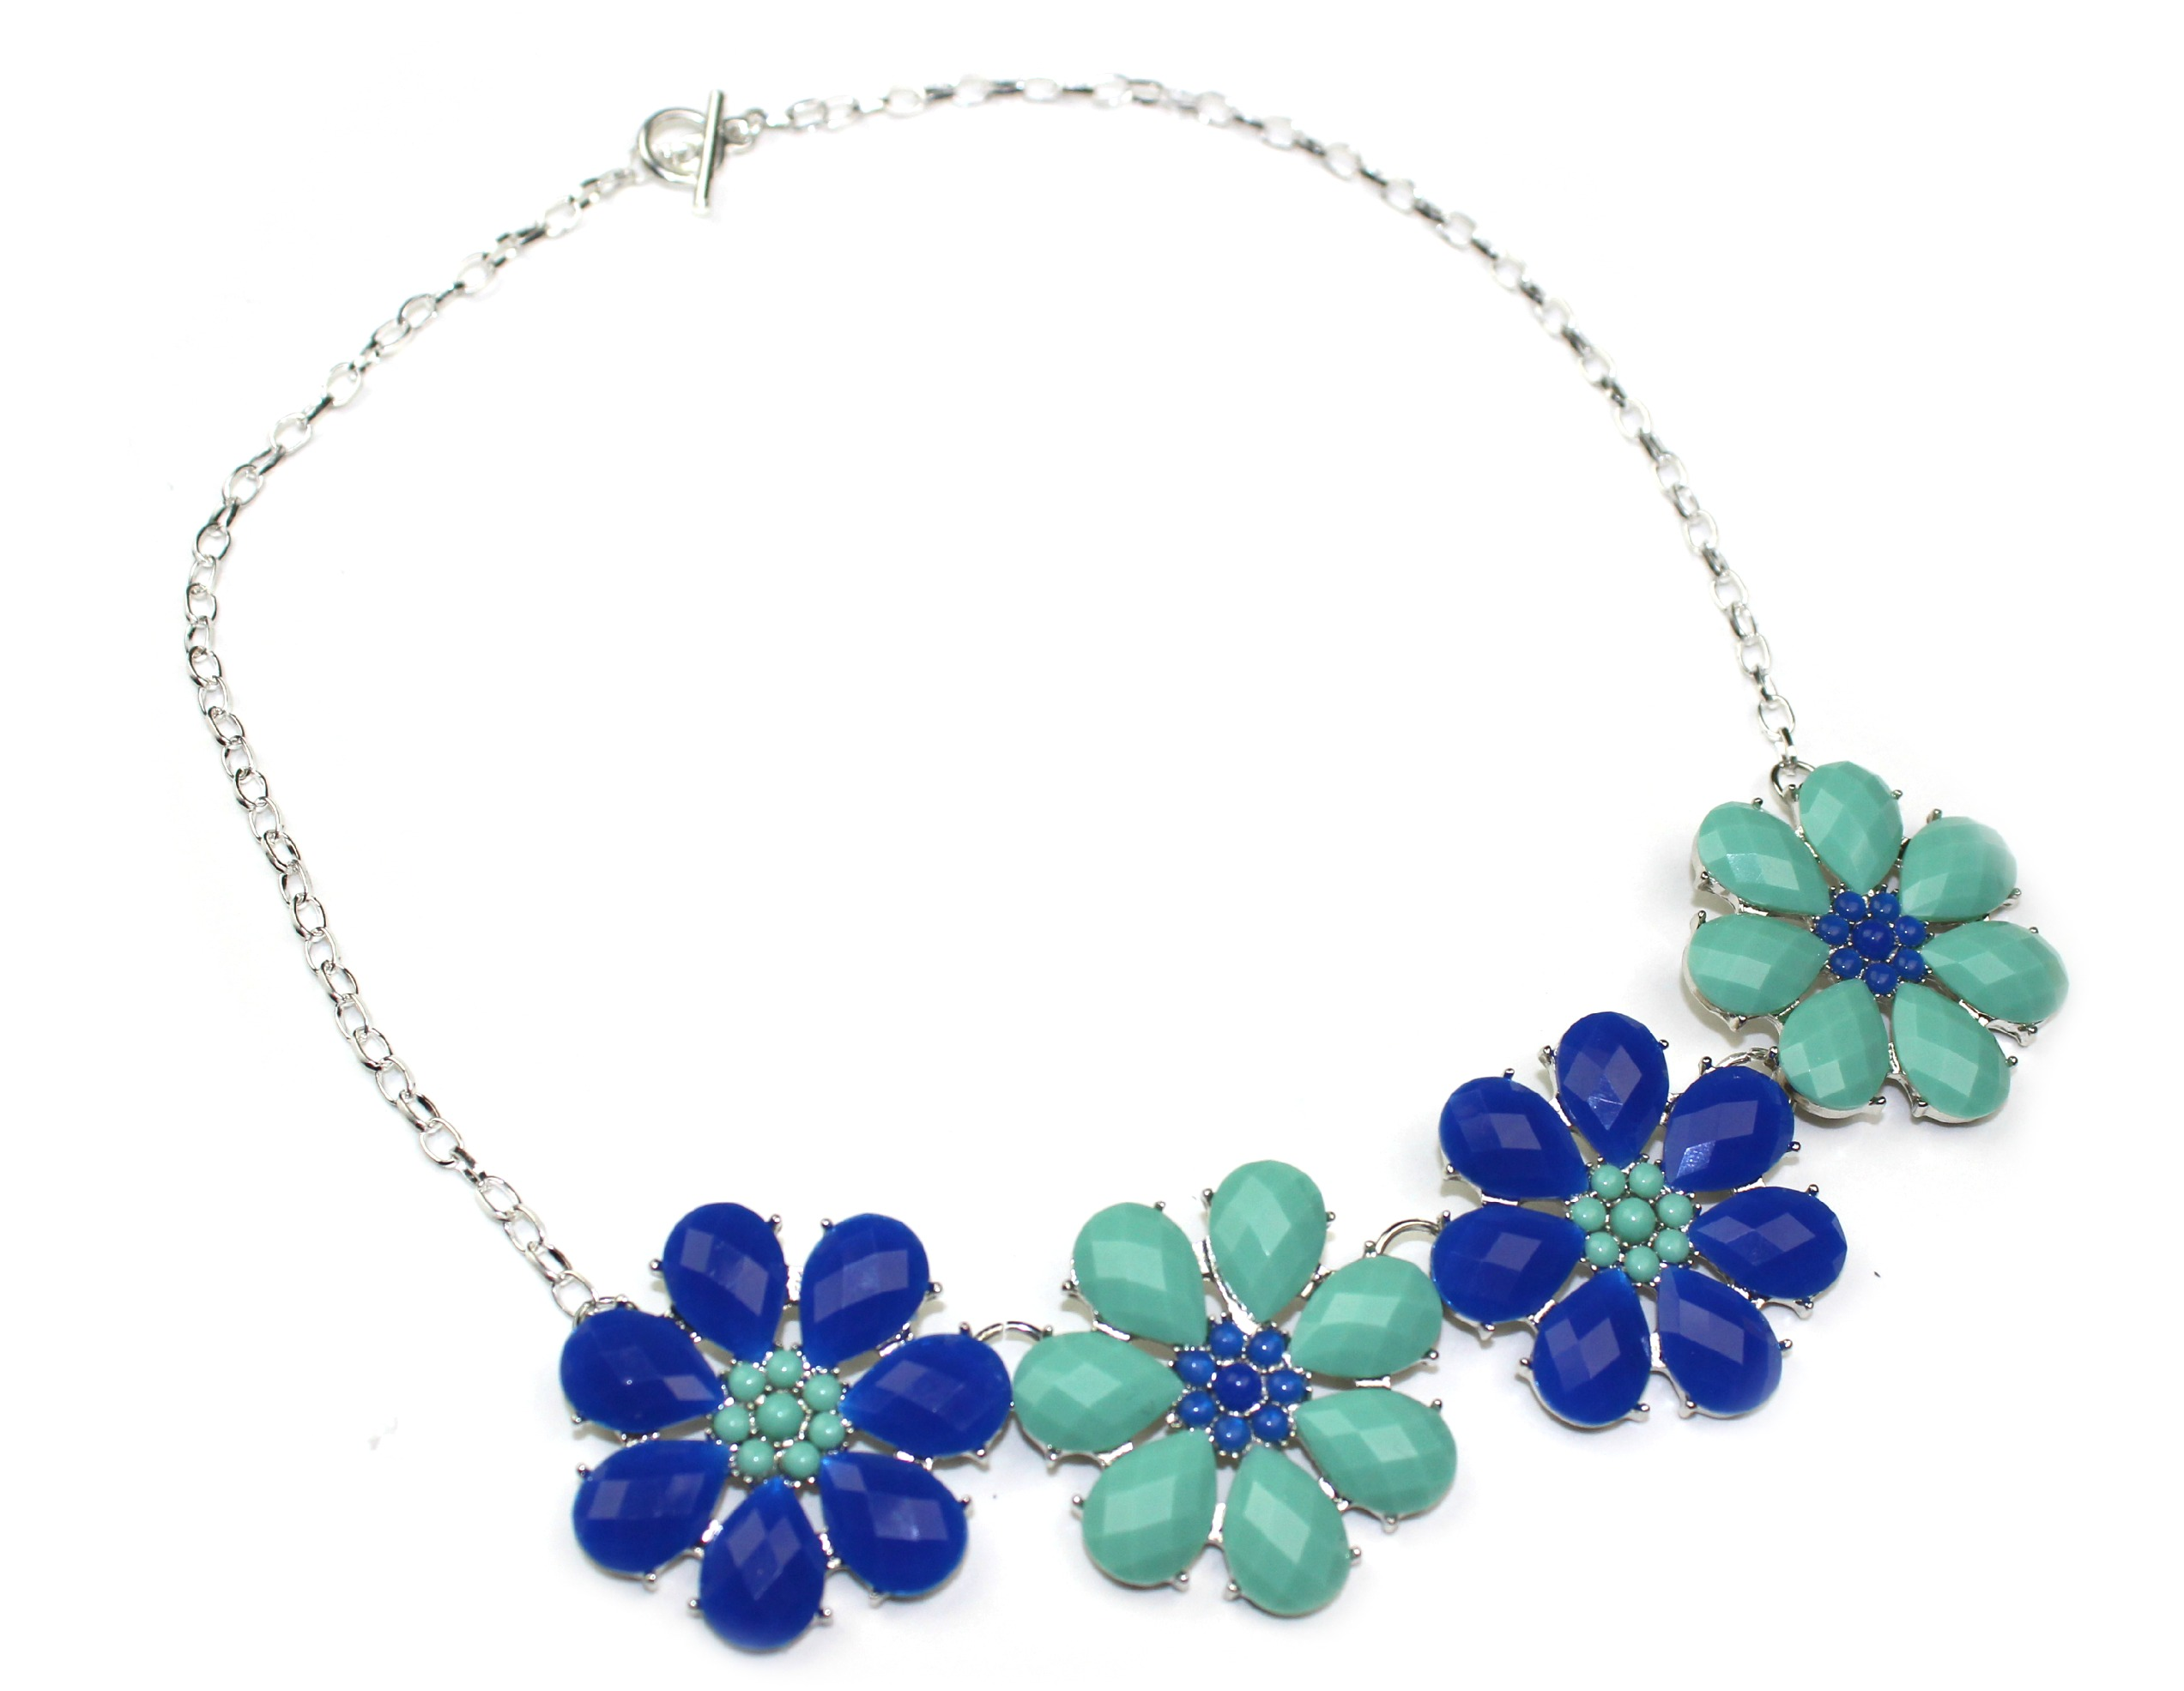 simple to summer best necklace people jewelry statement styles style com try this and colorful p chic click jcrew courtesy linksynergy a href